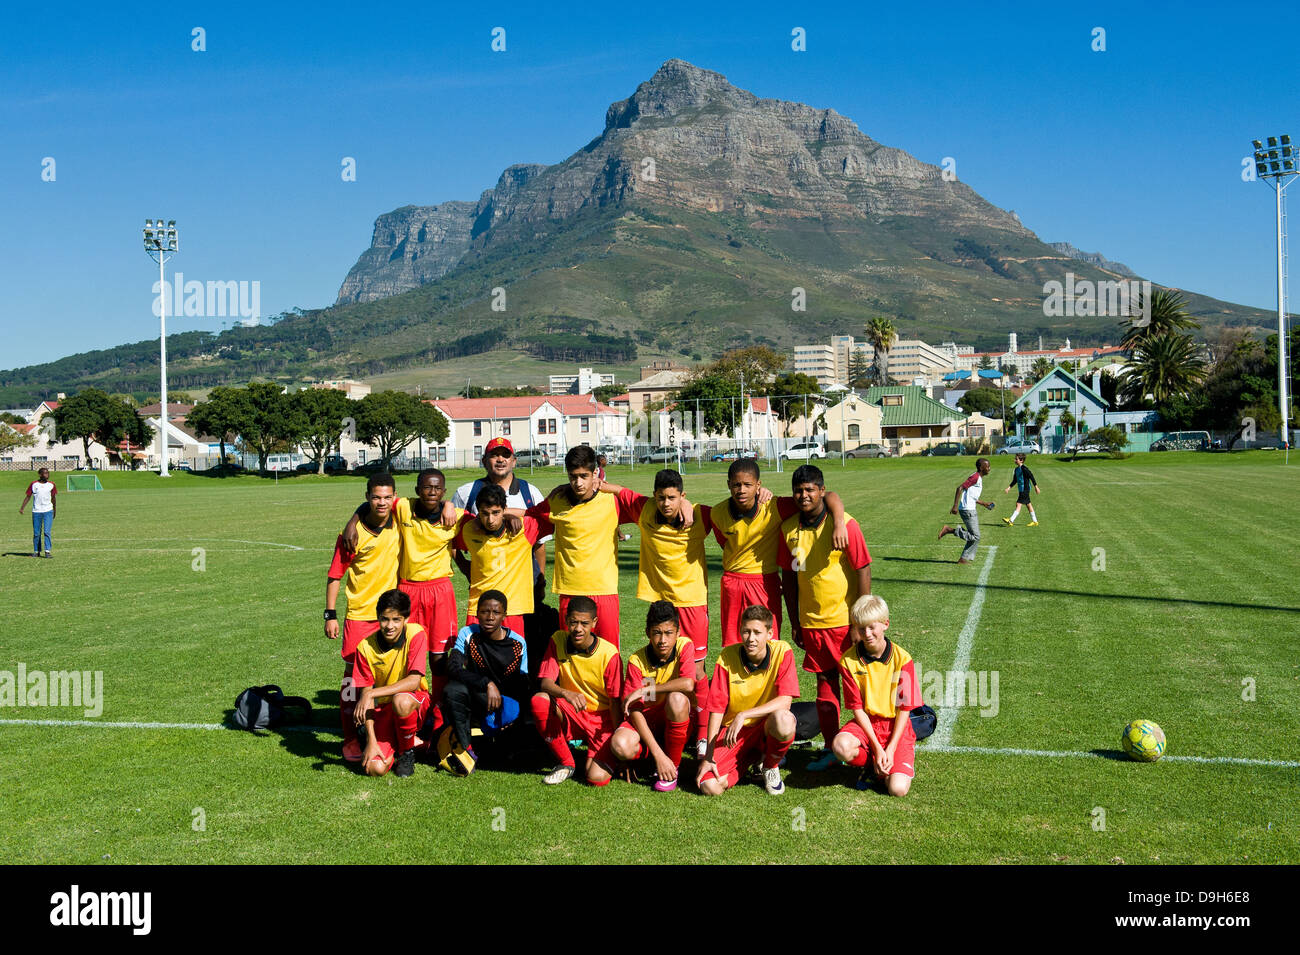 Rygersdal Football Club U15 junior team before a match, Cape Town, South Africa - Stock Image